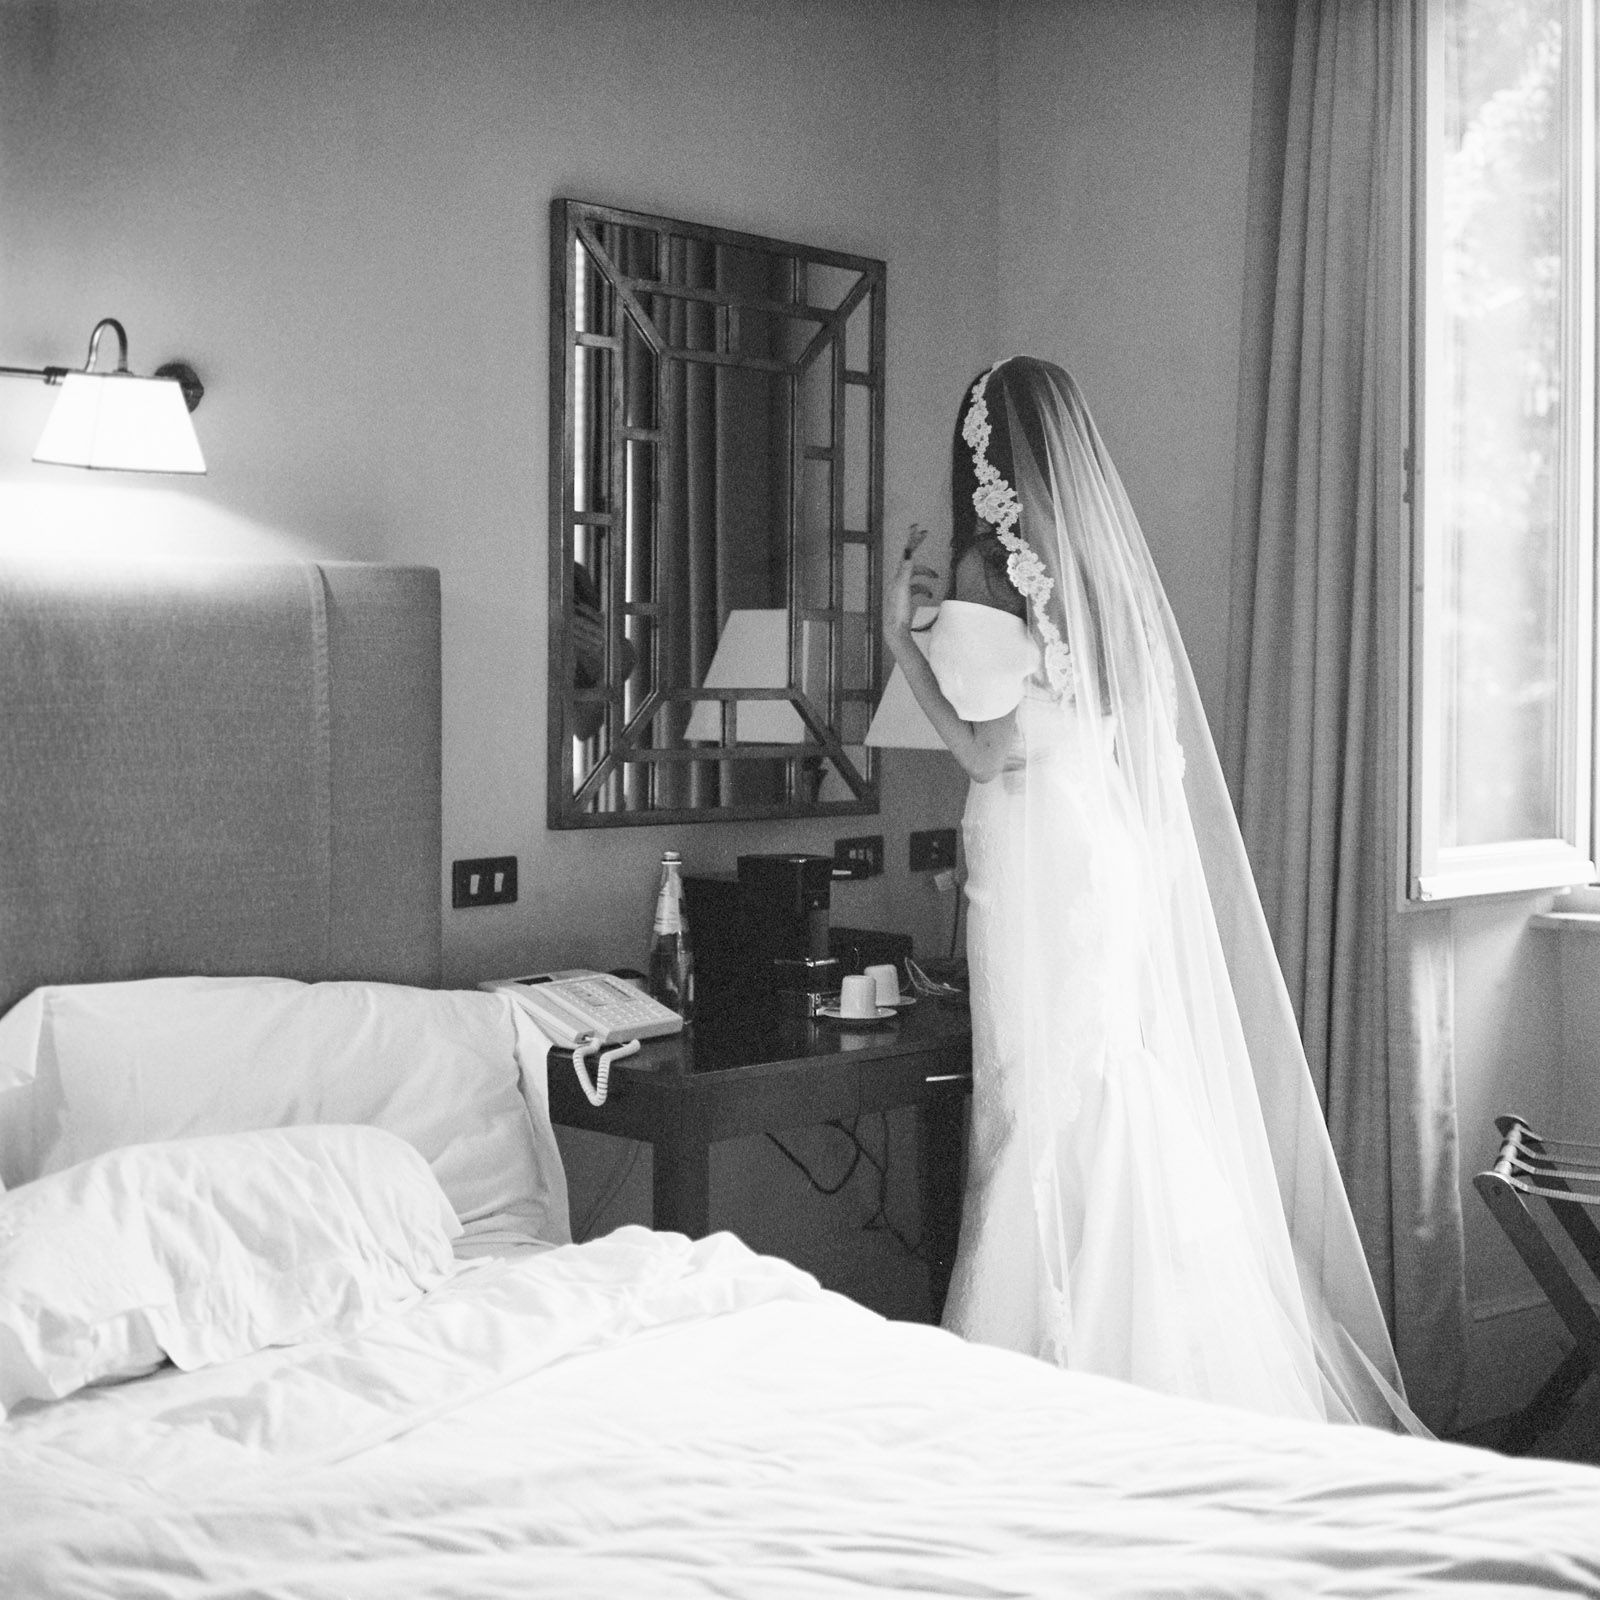 "<p>The bride, friends and family stayed at the <a href=""https://www.roccofortehotels.com/hotels-and-resorts/hotel-de-russie/?utm_source=google&utm_medium=local&utm_campaign=hotel_de_russie"" target=""_blank"">Hotel de Russie</a> the week preceding the wedding, and got dressed there before all of the weekend's events. Here, Natasha puts the finishing touches on her <a href=""http://moniquelhuillier.com"" target=""_blank"">Monique Lhuillier</a> gown and veil. ""The morning of the wedding did not go as I had planned, but nothing in life ever does—and I firmly believe that spontaneity is what makes it worth living,"" Natasha recalled. <span></span></p>"